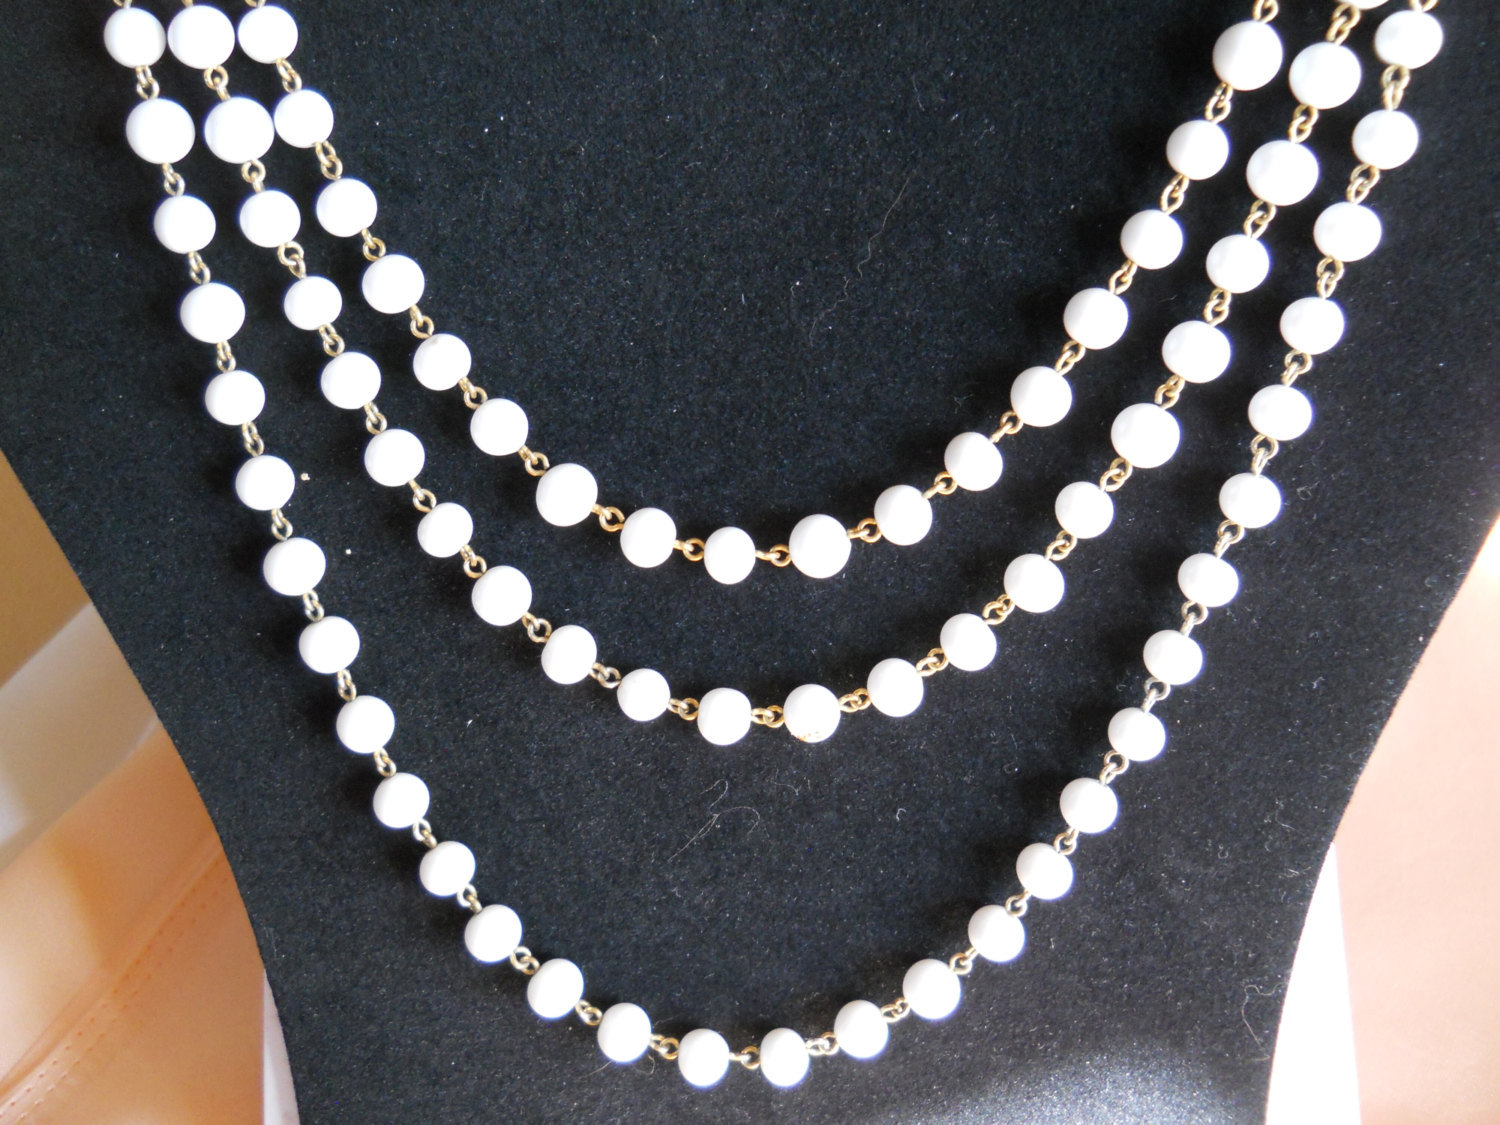 Endless Strand Necklace Milk Glass Bead and Gold Tone Metal Vintage image 2